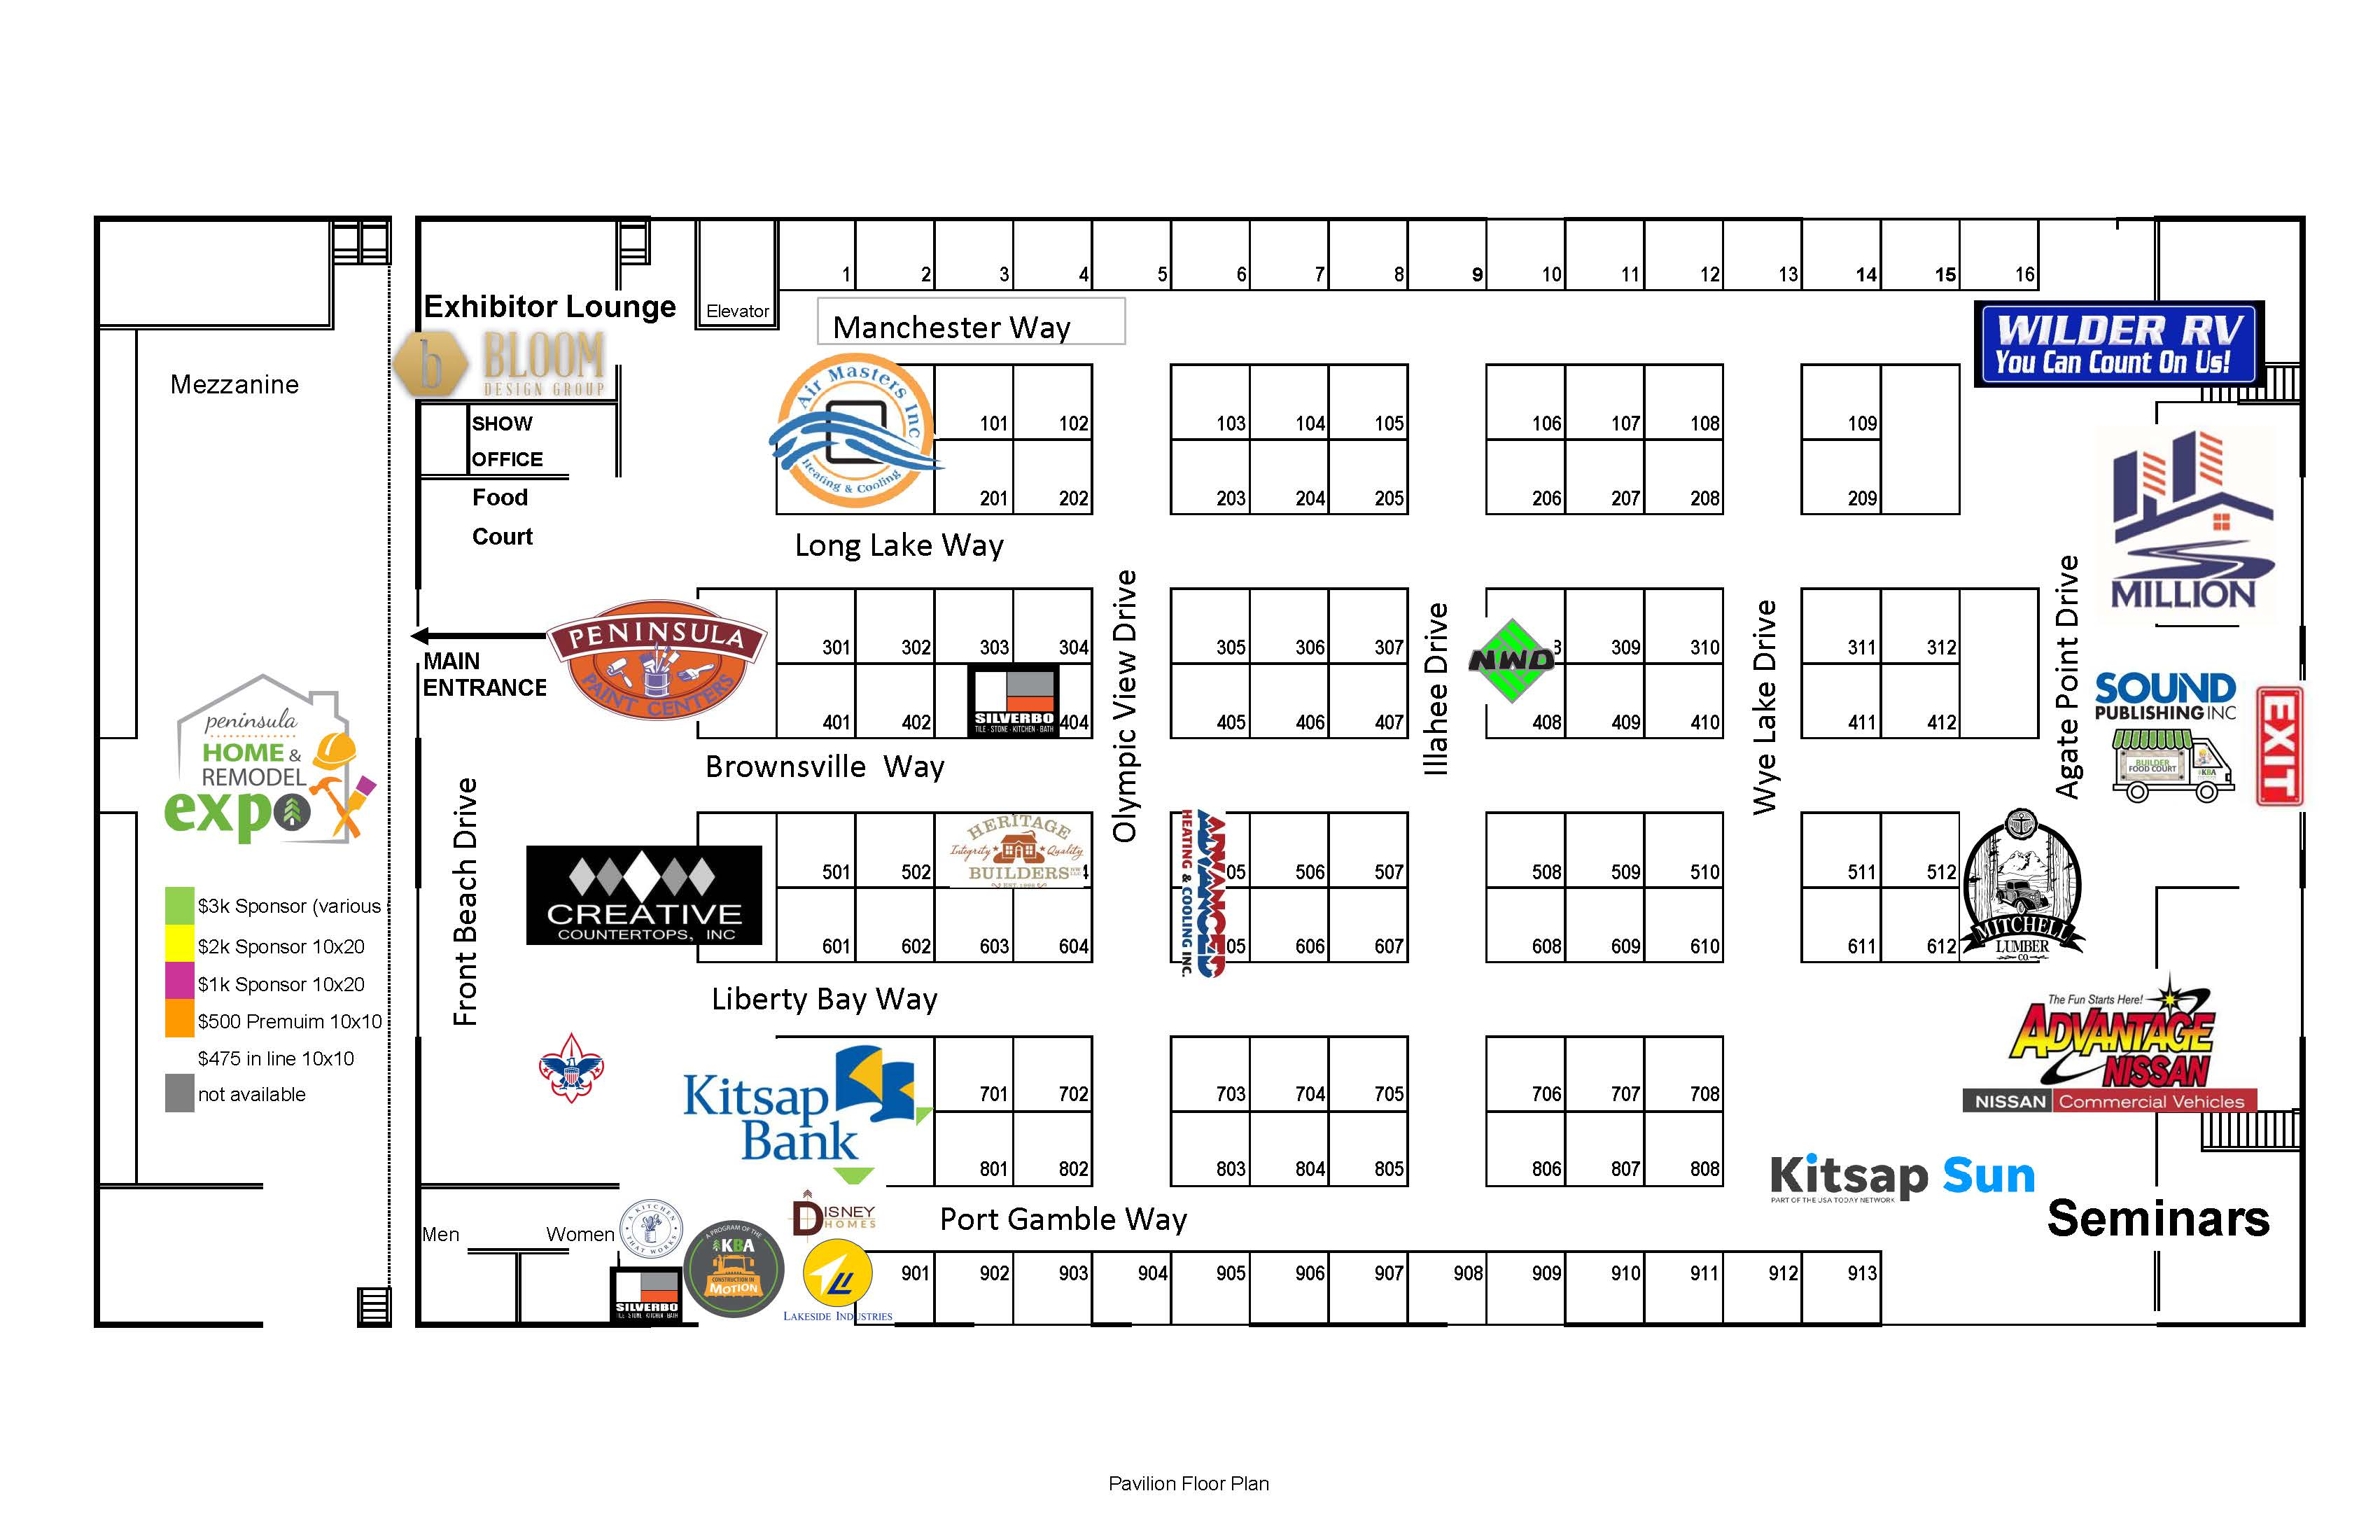 Floor Plan - Pavilion fall 2019 w sponsors bw 8.12